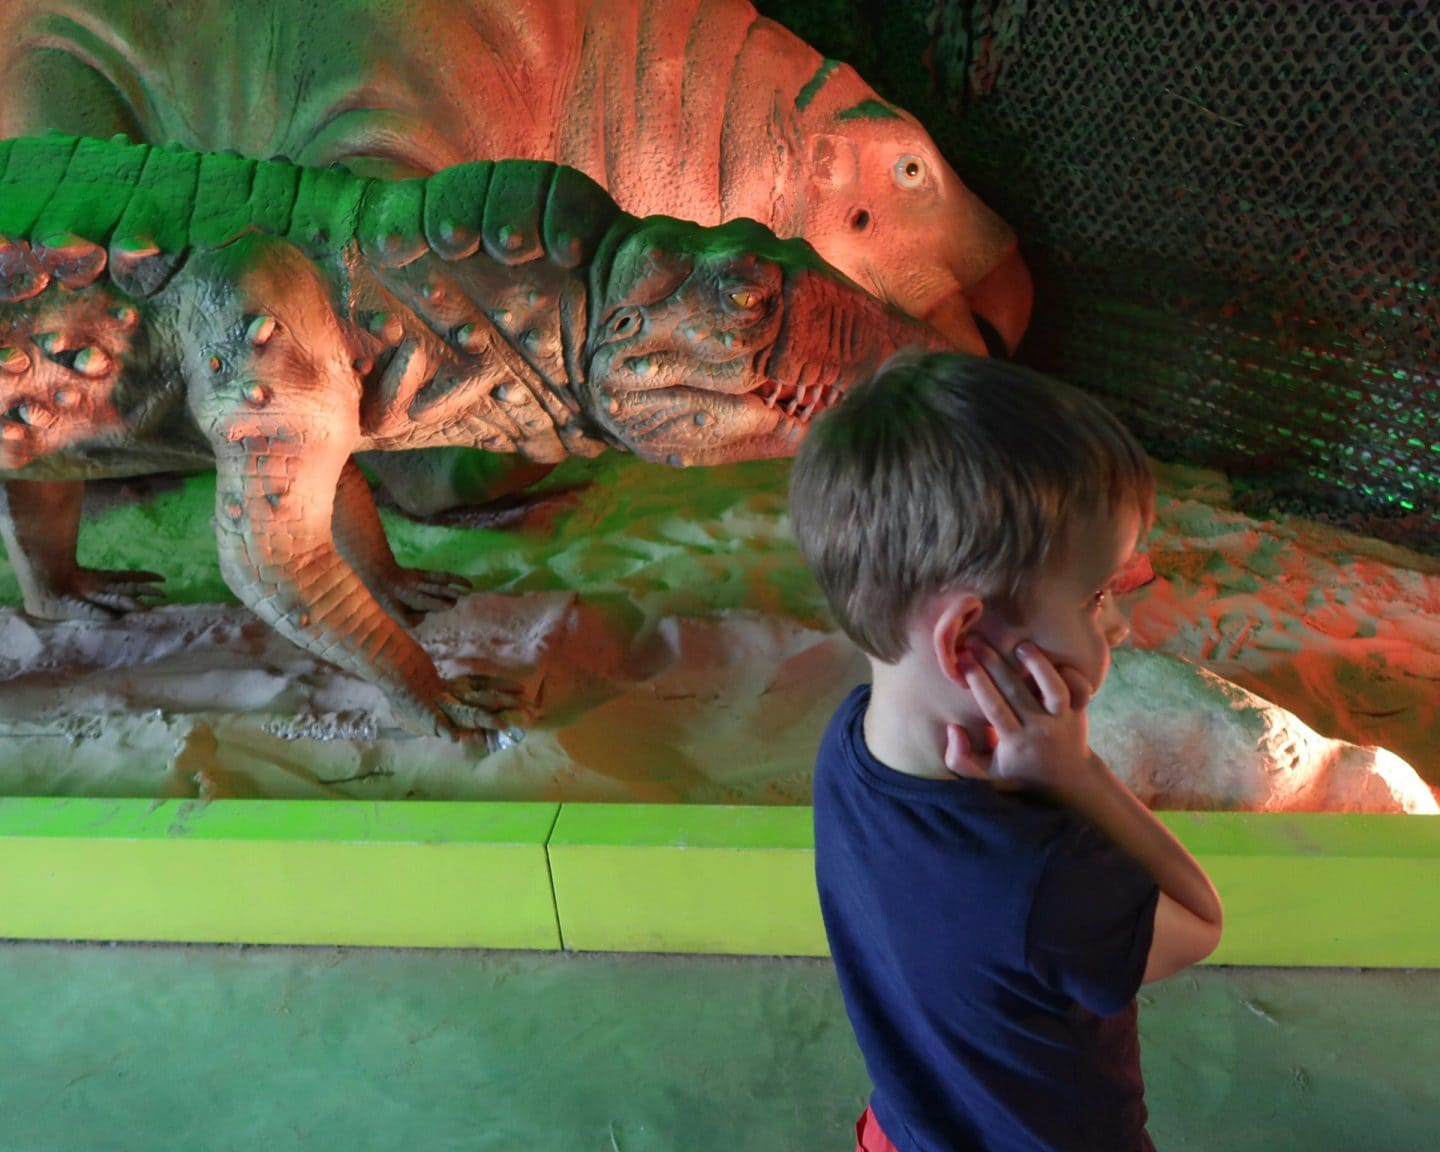 Biggest (a small boy) covering his ears in front of a model dinosaur.